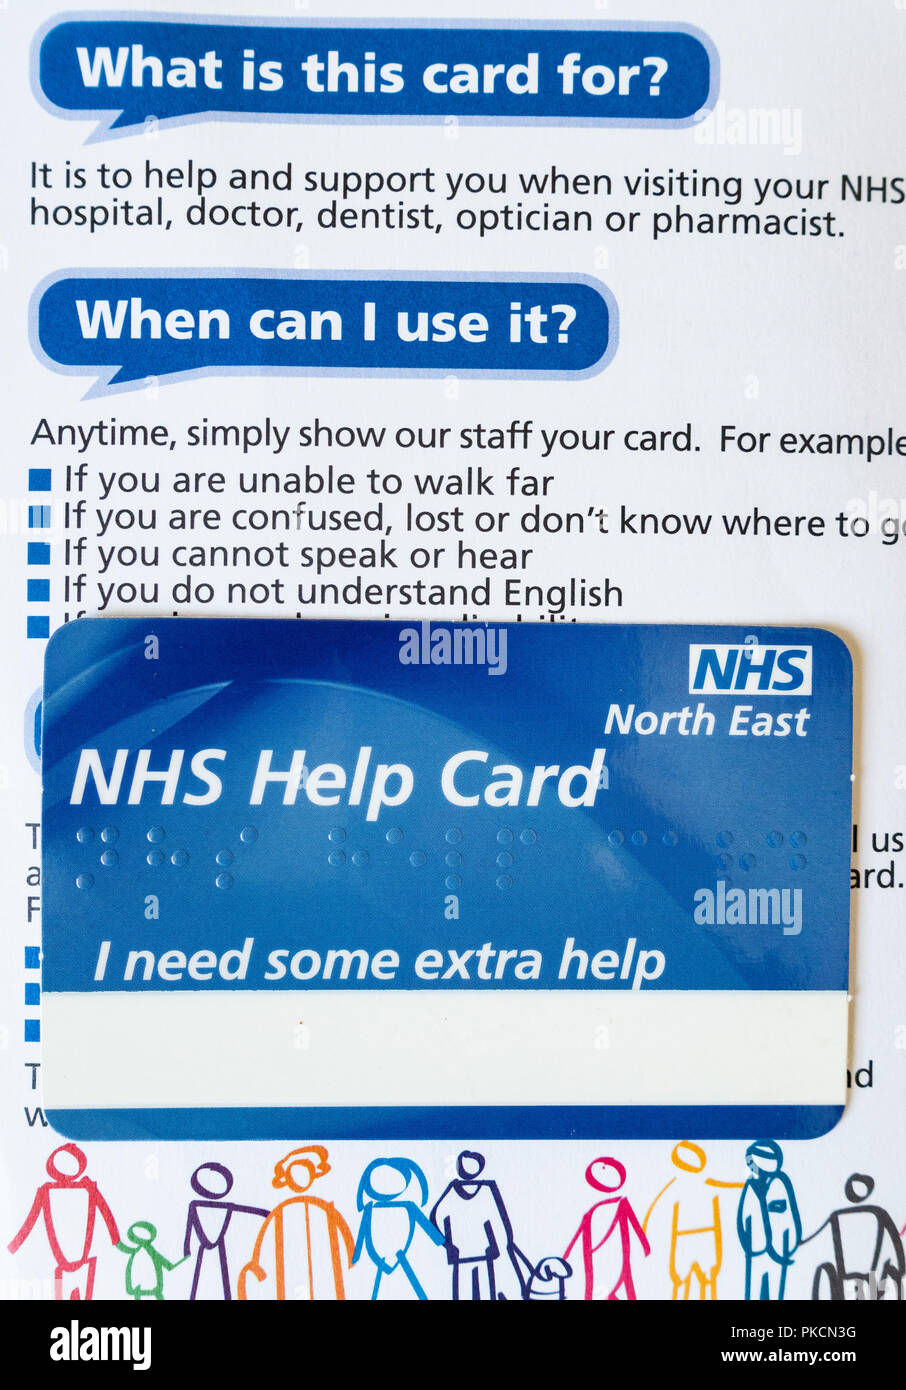 National Health Service help card. UK - Stock Image